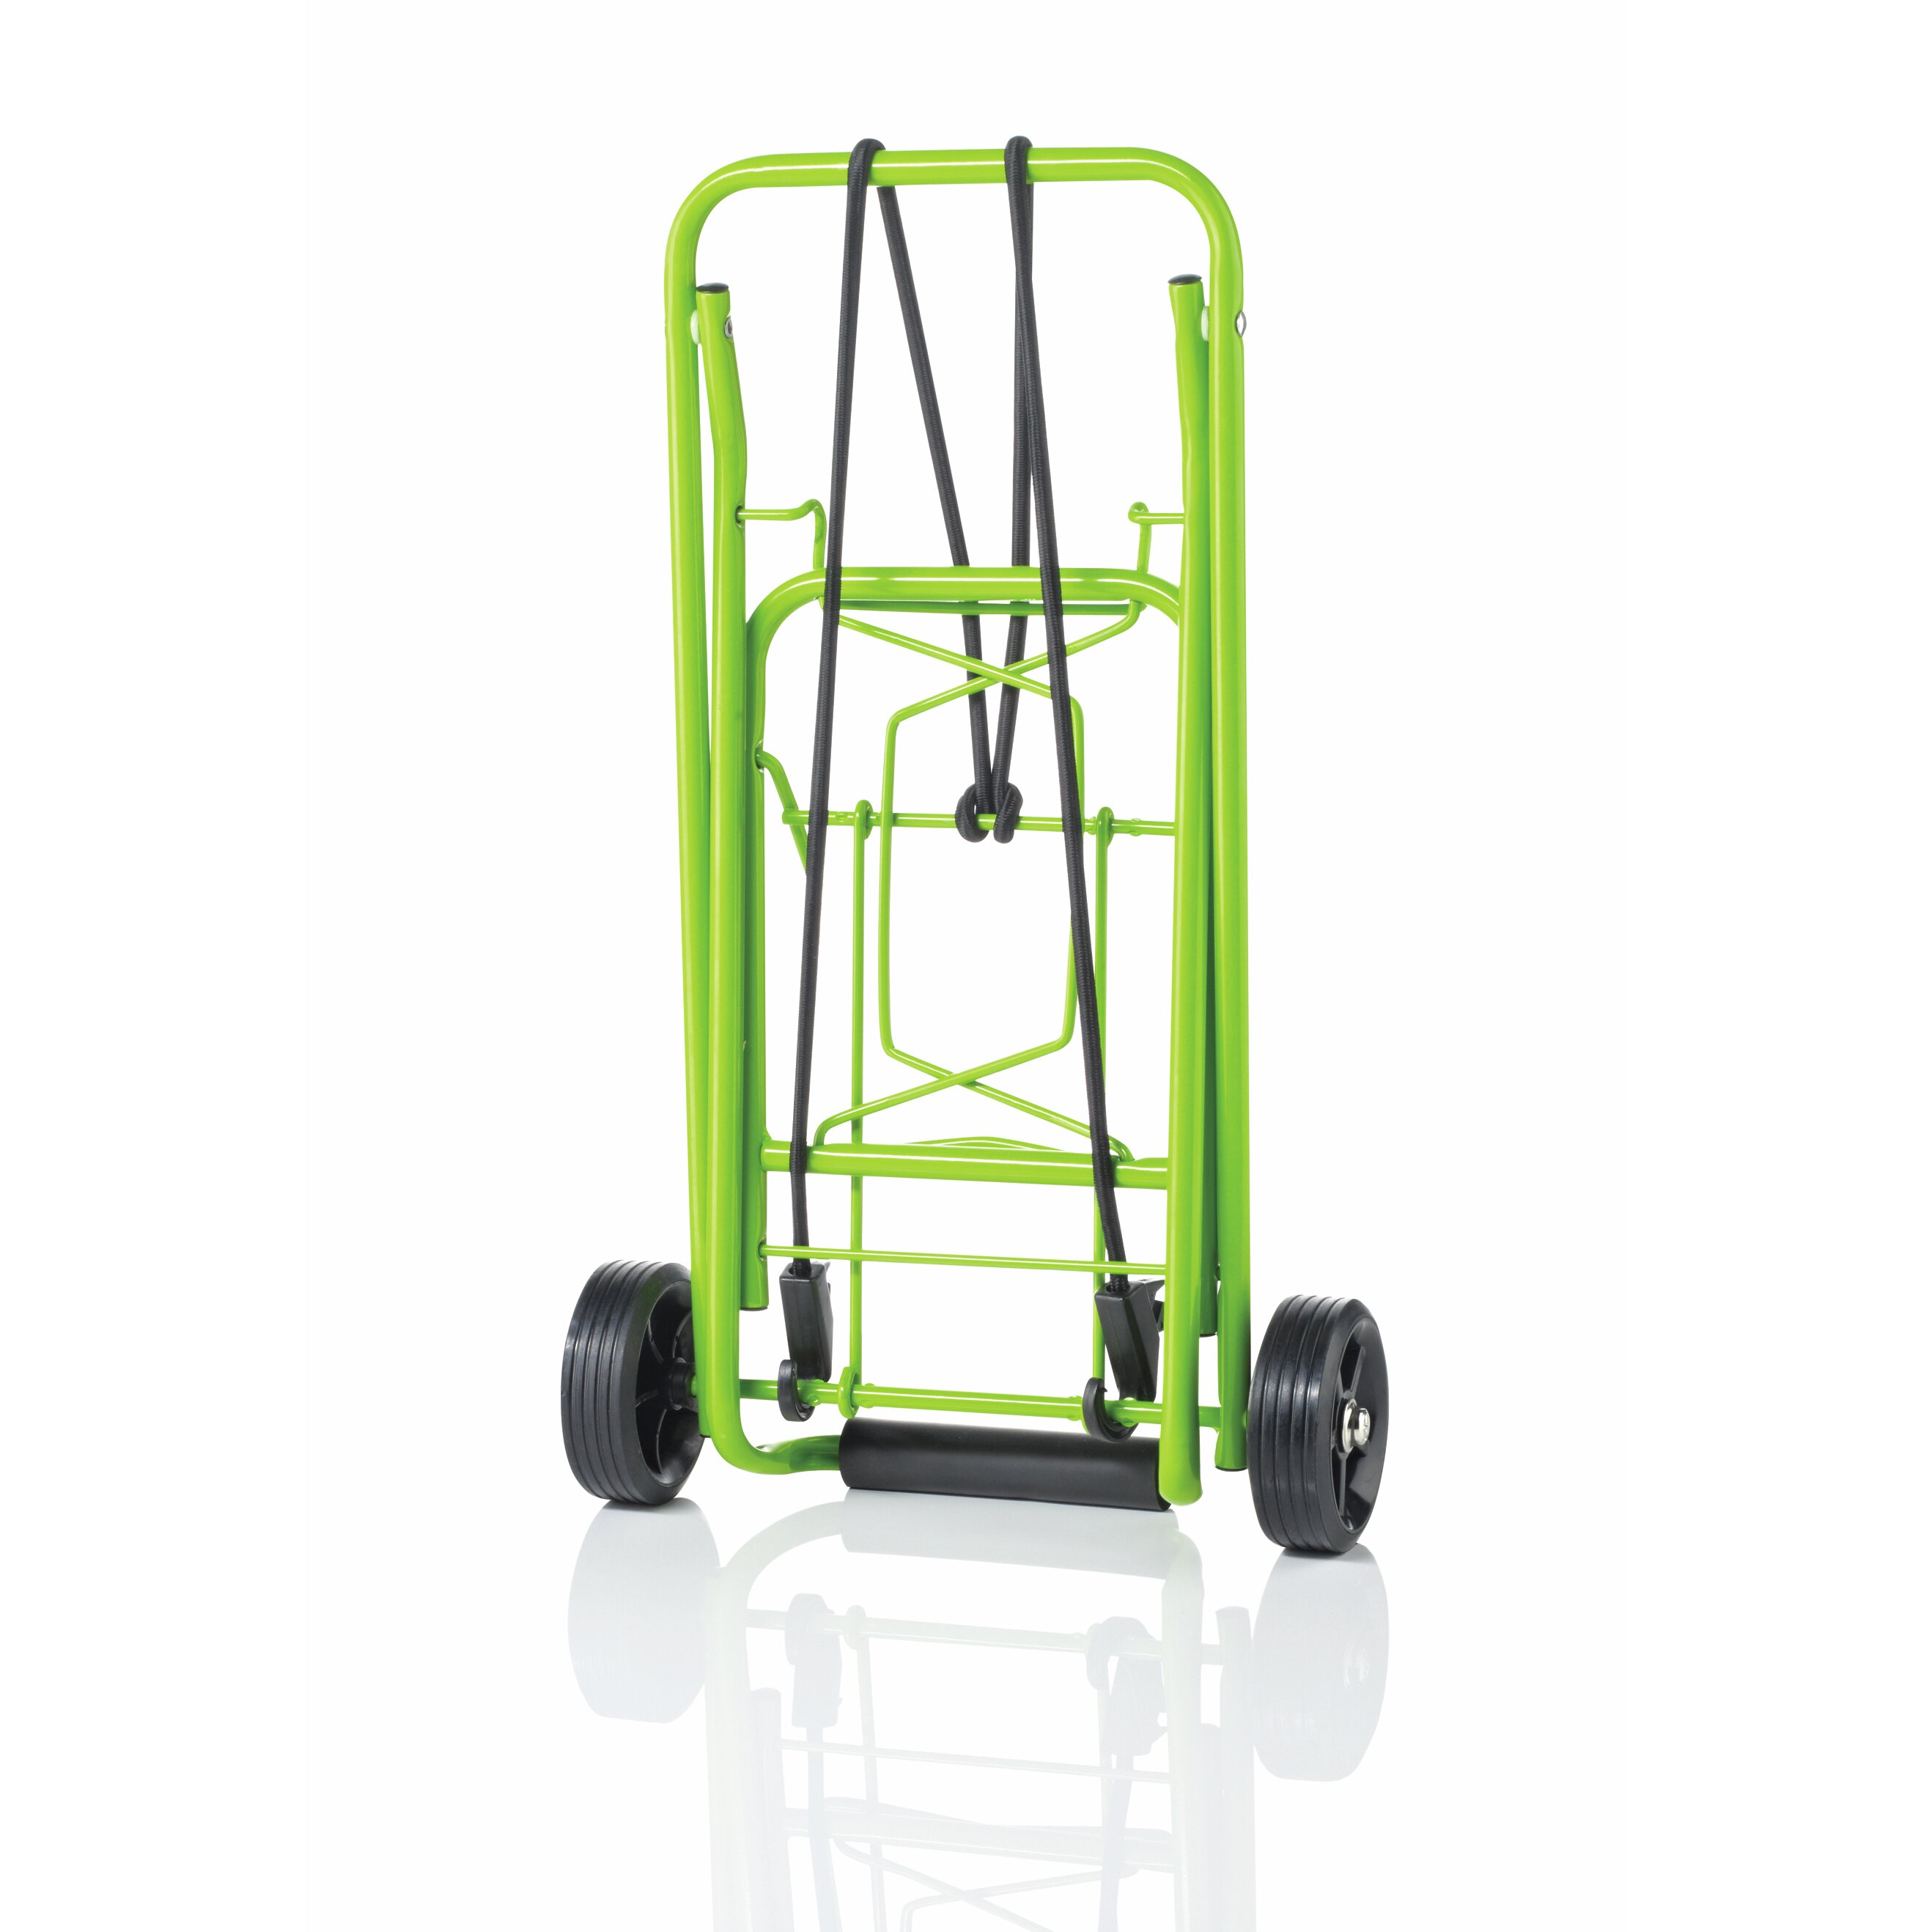 Travel Smart By Conair Cts Folding Luggage Cart Hand Truck Amp Reviews Wayfair